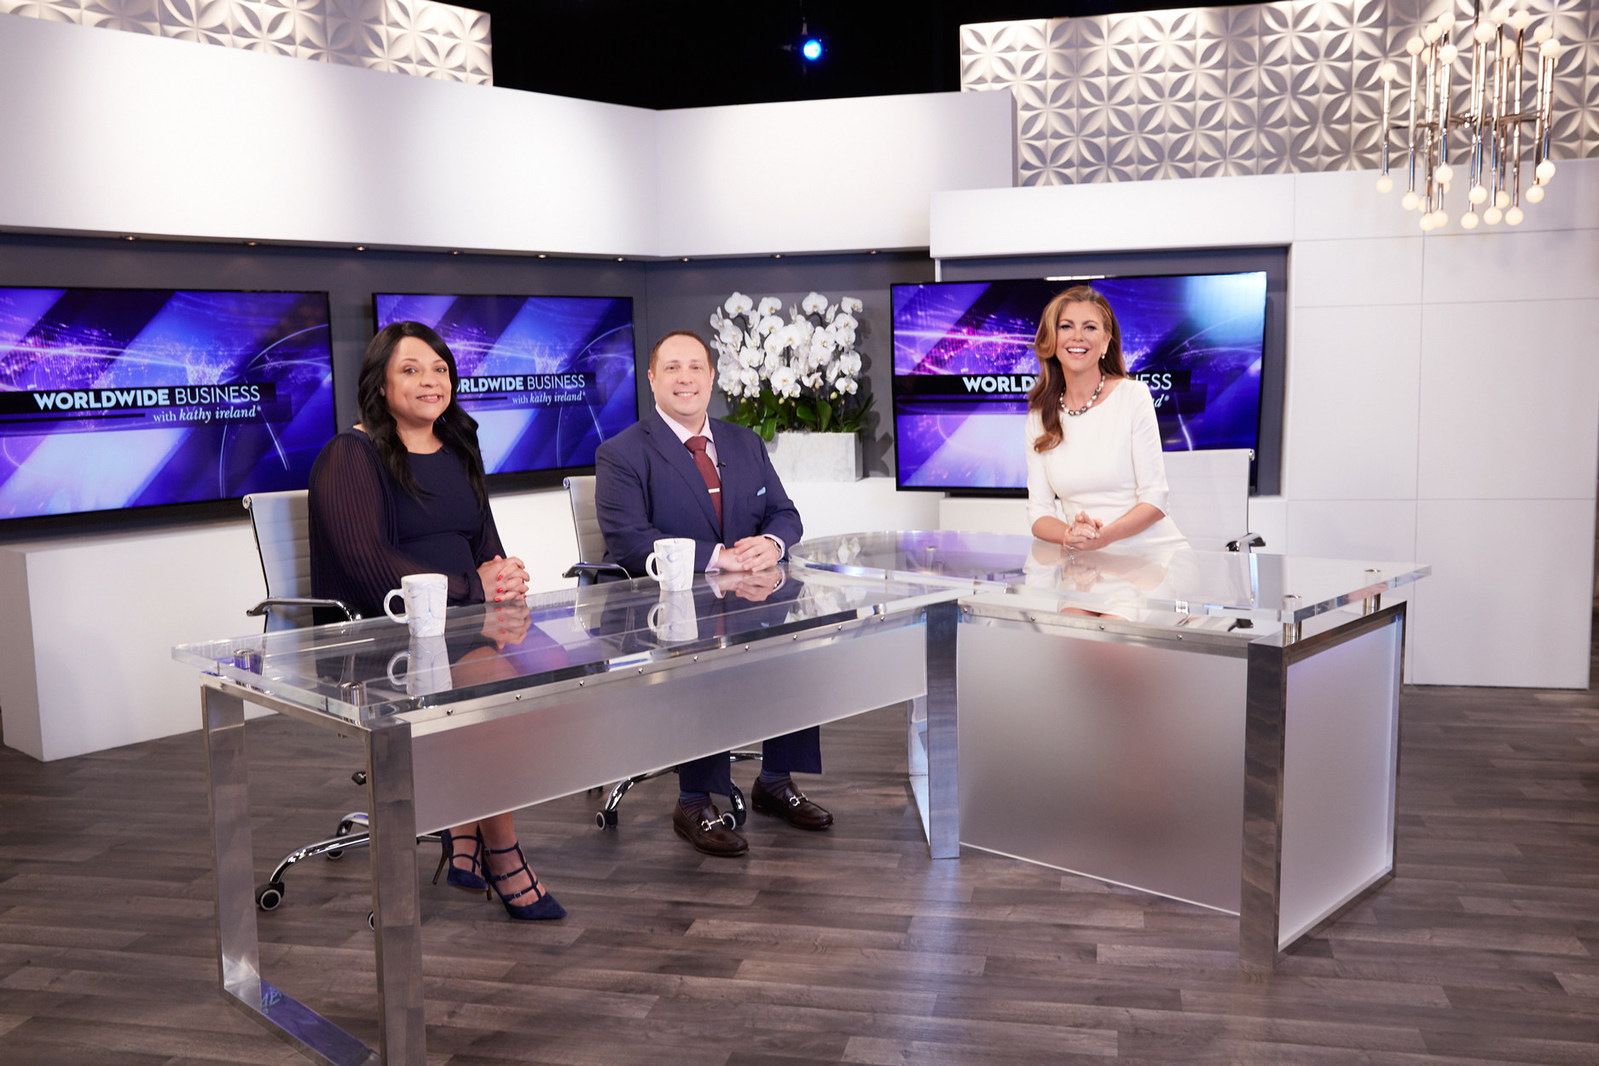 Datix to Feature on Worldwide Business with kathy ireland®, Sunday June 25th!